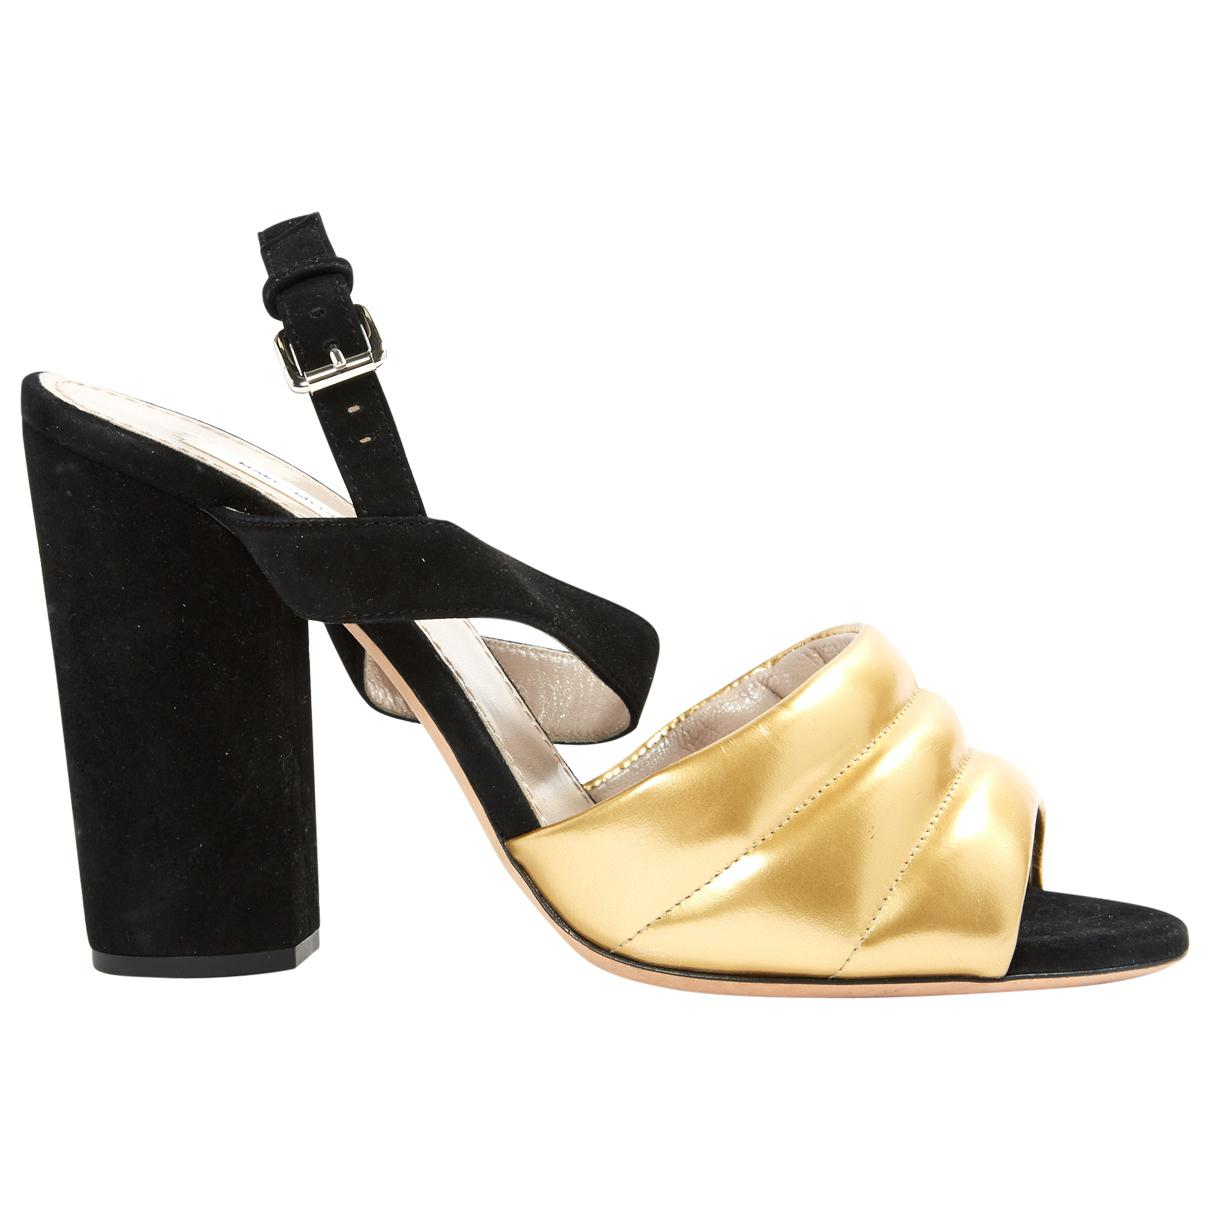 Pre-owned - Leather heels Marc Jacobs Discount 2018 Cheap Sale Latest Collections Clearance Affordable q3WasGQU